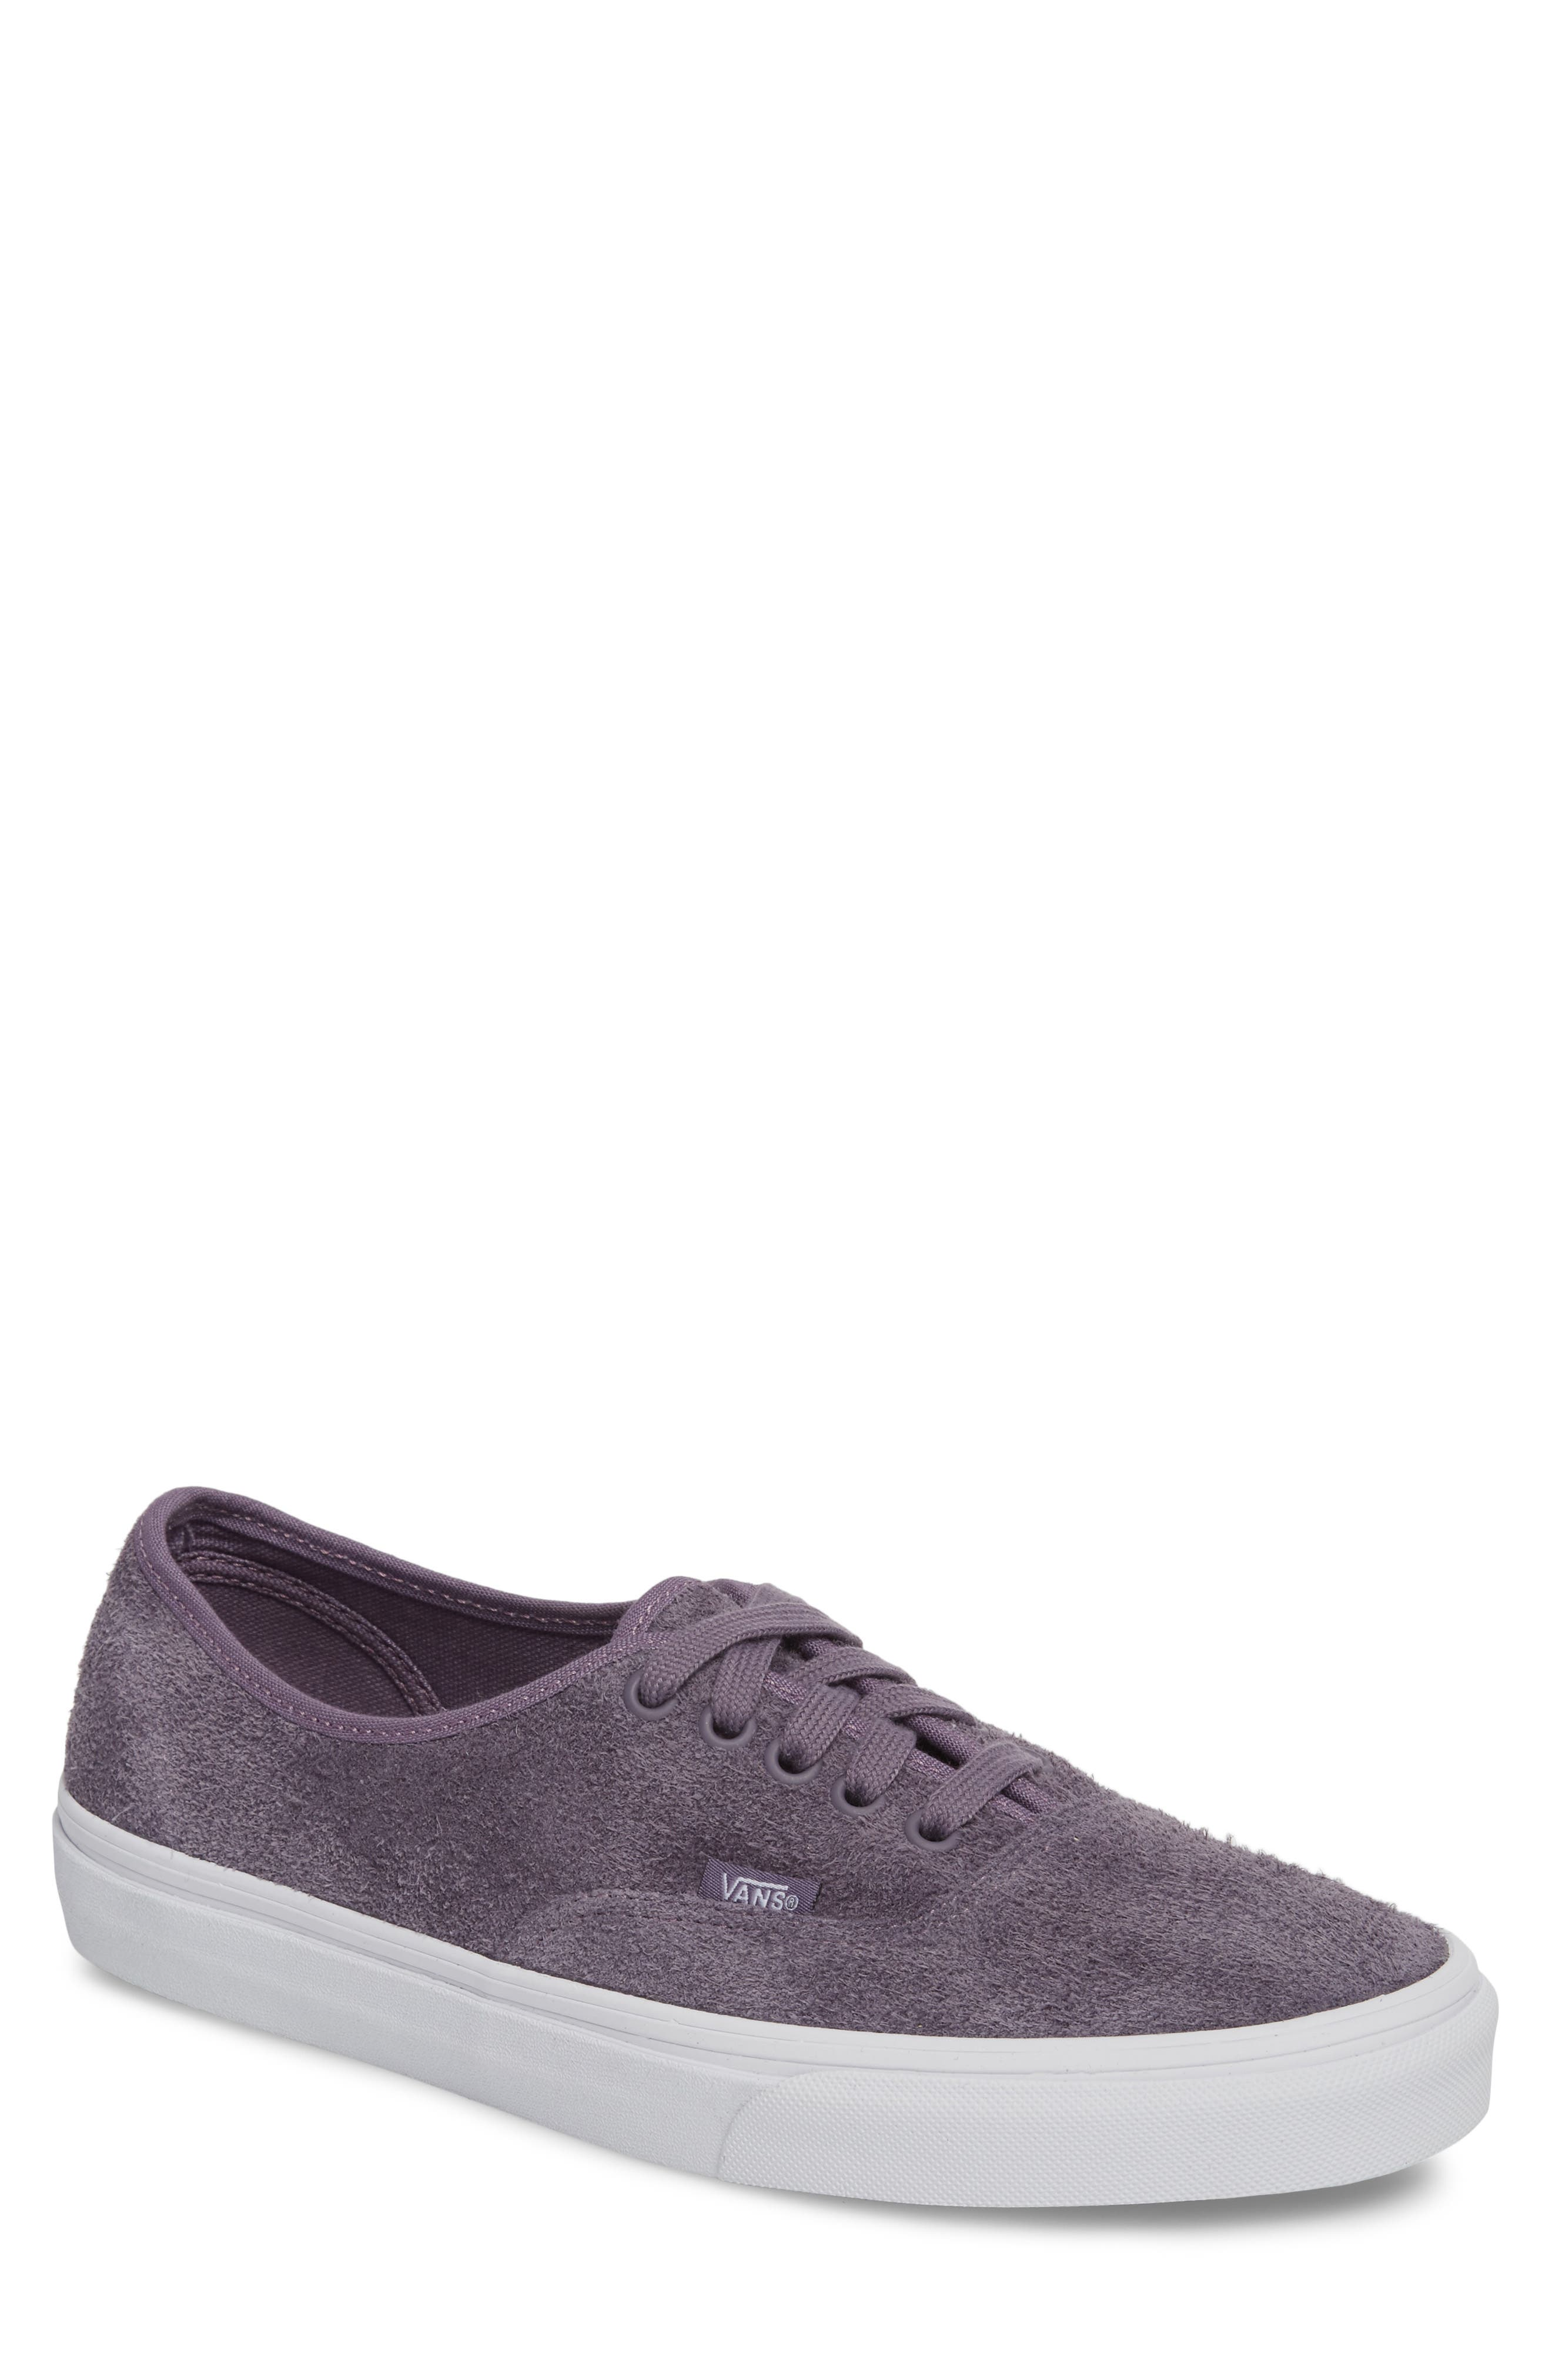 Turnschuhe VANS - Authentic VN0A38EMQ8S (Hairy Suede) Purple Sage C7aFuI